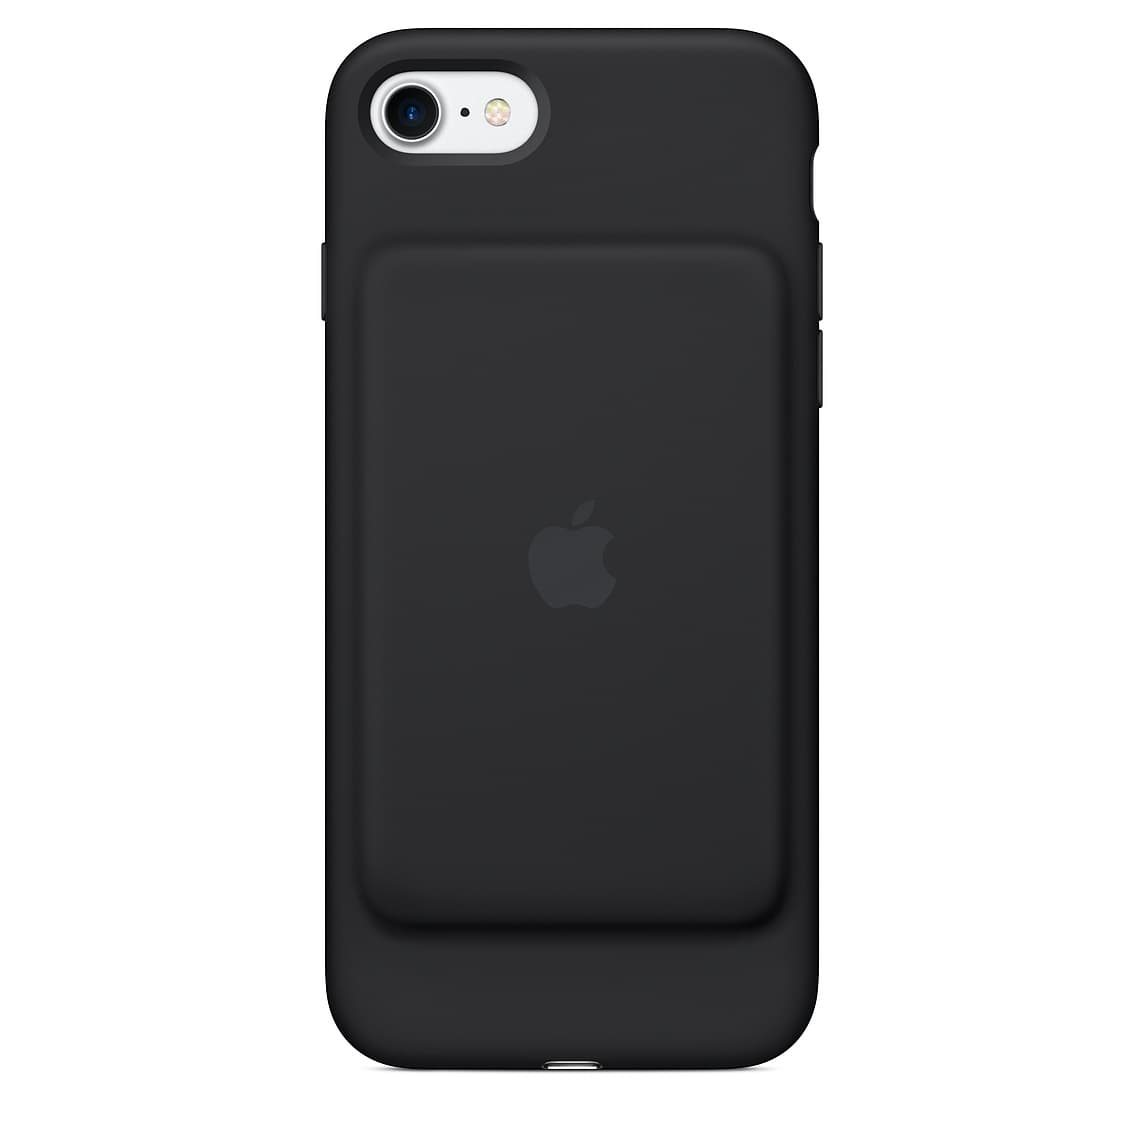 Apple iPhone 7 Smart Battery Case Black (MN002ZM-A)